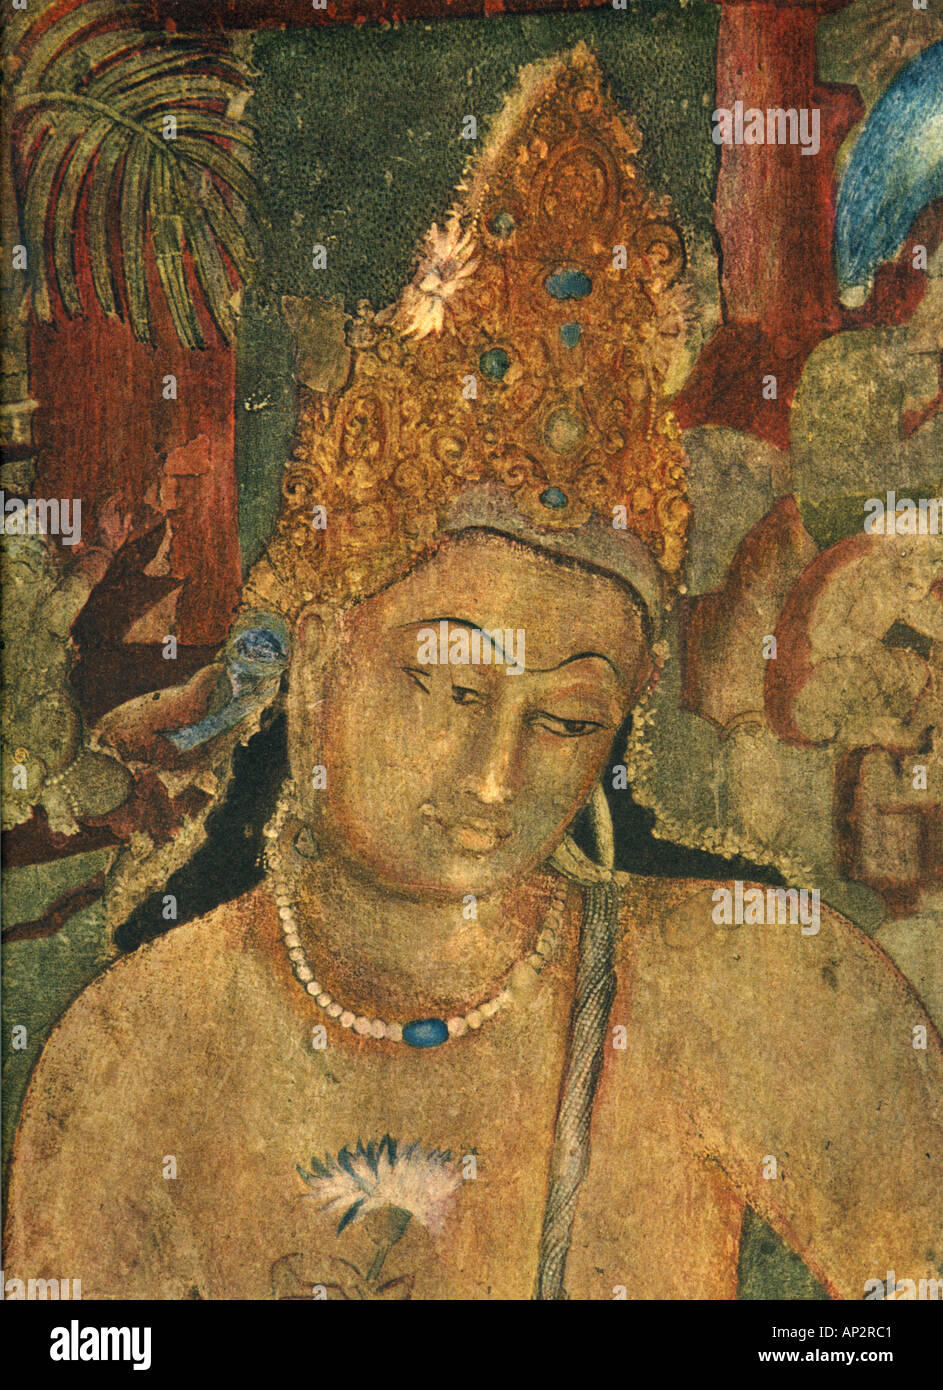 Asian Painting Colours >> Art Fresco Ajanta caves Indian Buddhist wall painting illustration Stock Photo: 5111744 - Alamy